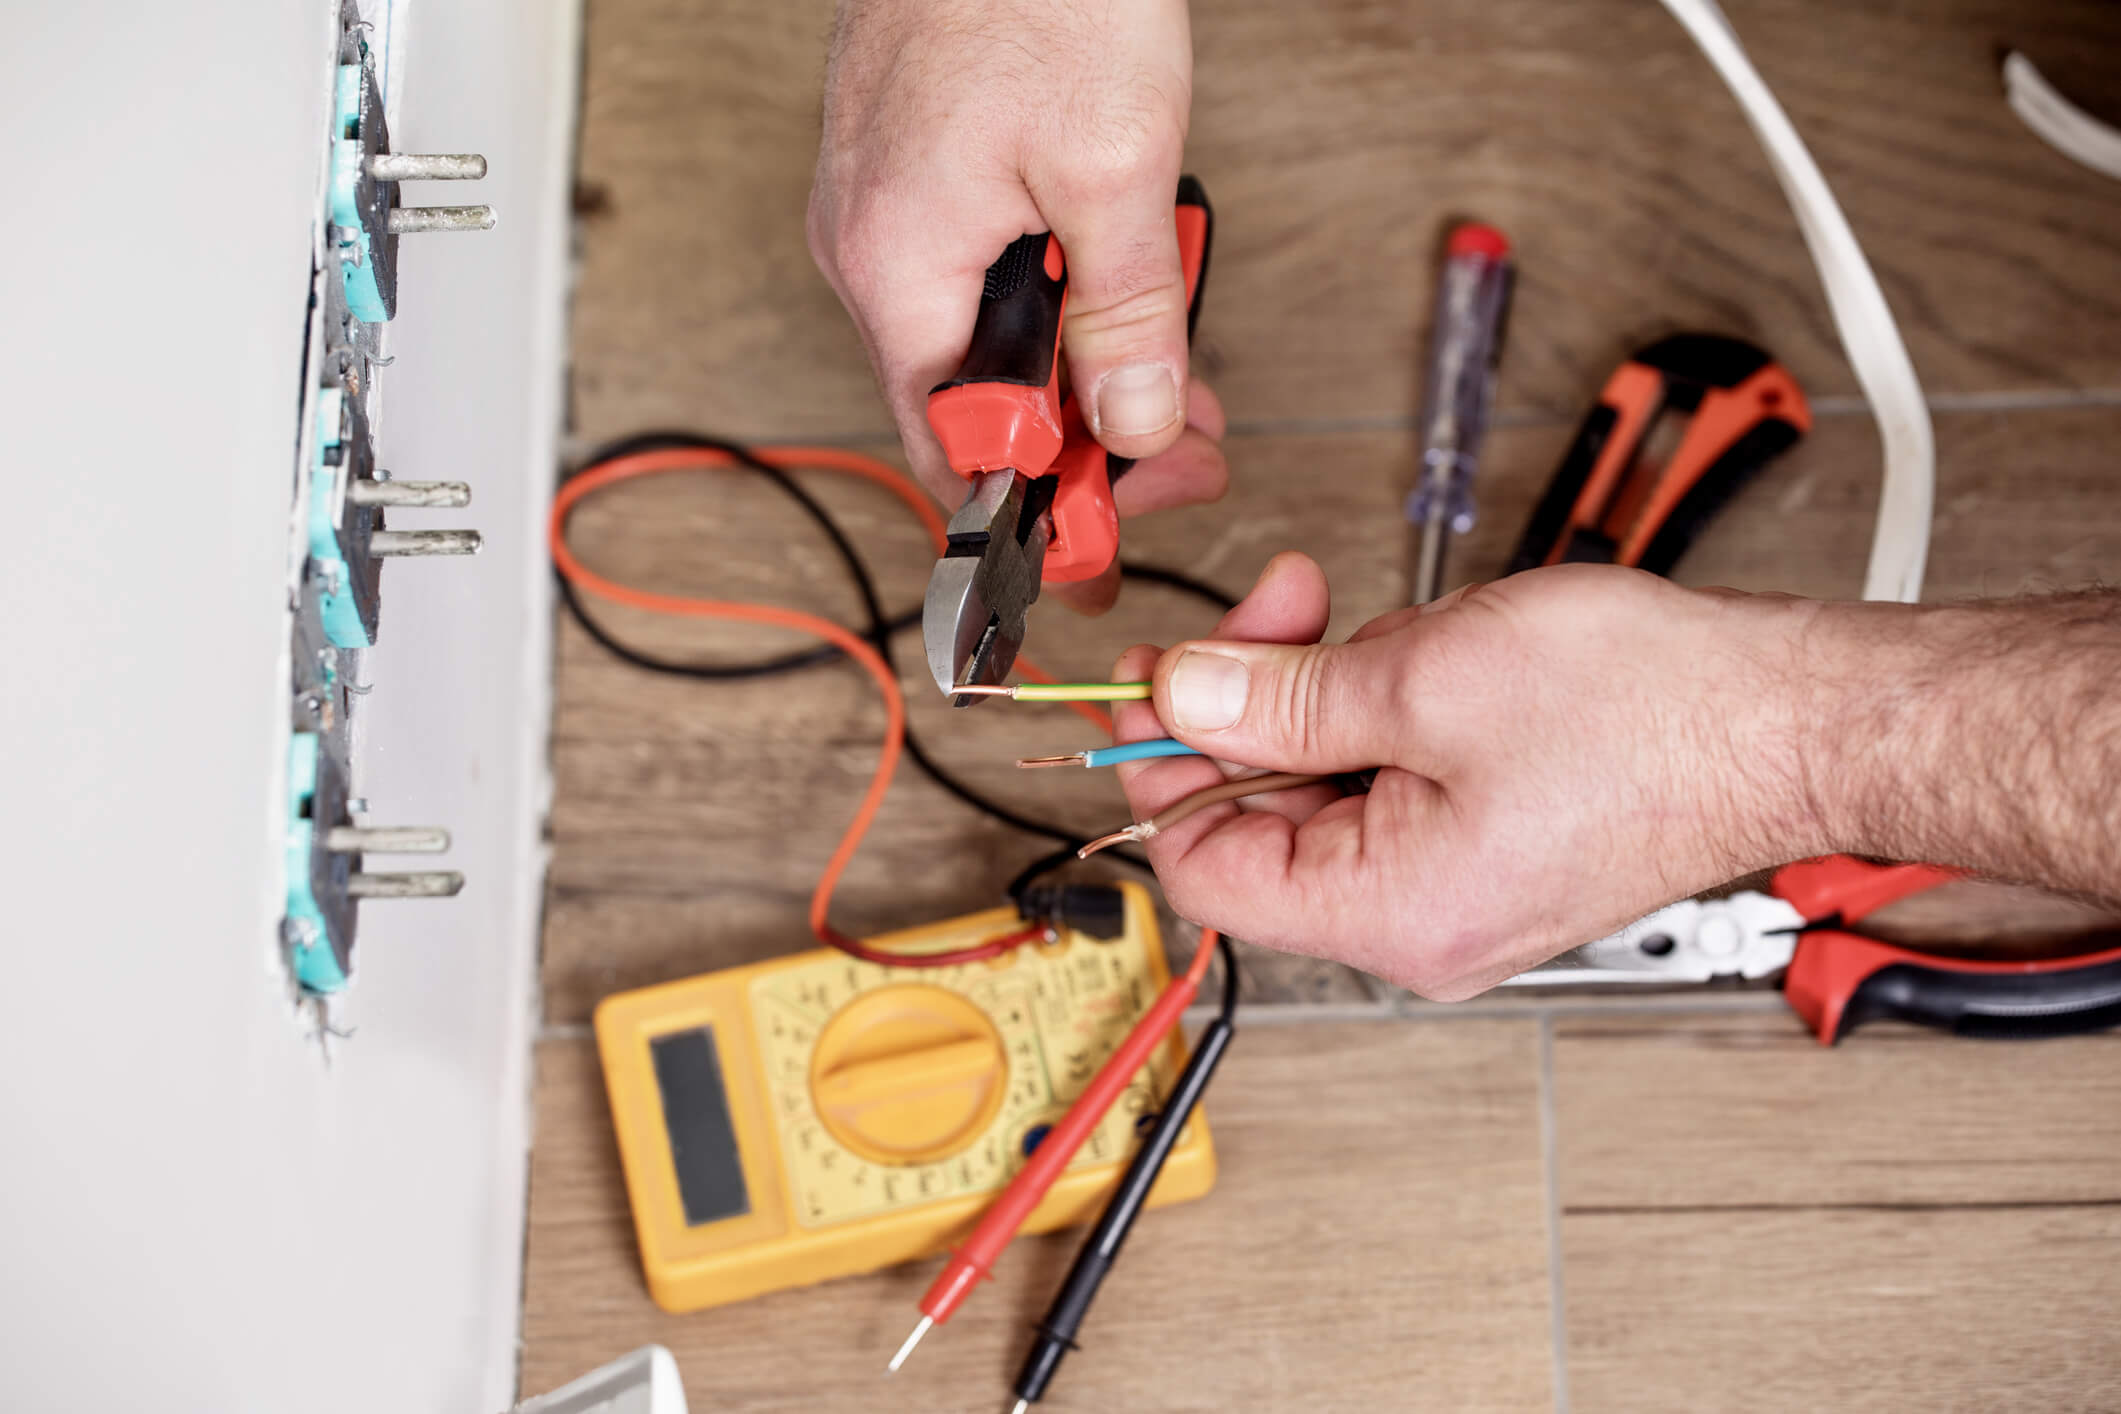 Electrician at work, home renovation, electrical installation, Hand of an electrician, handyman at work.